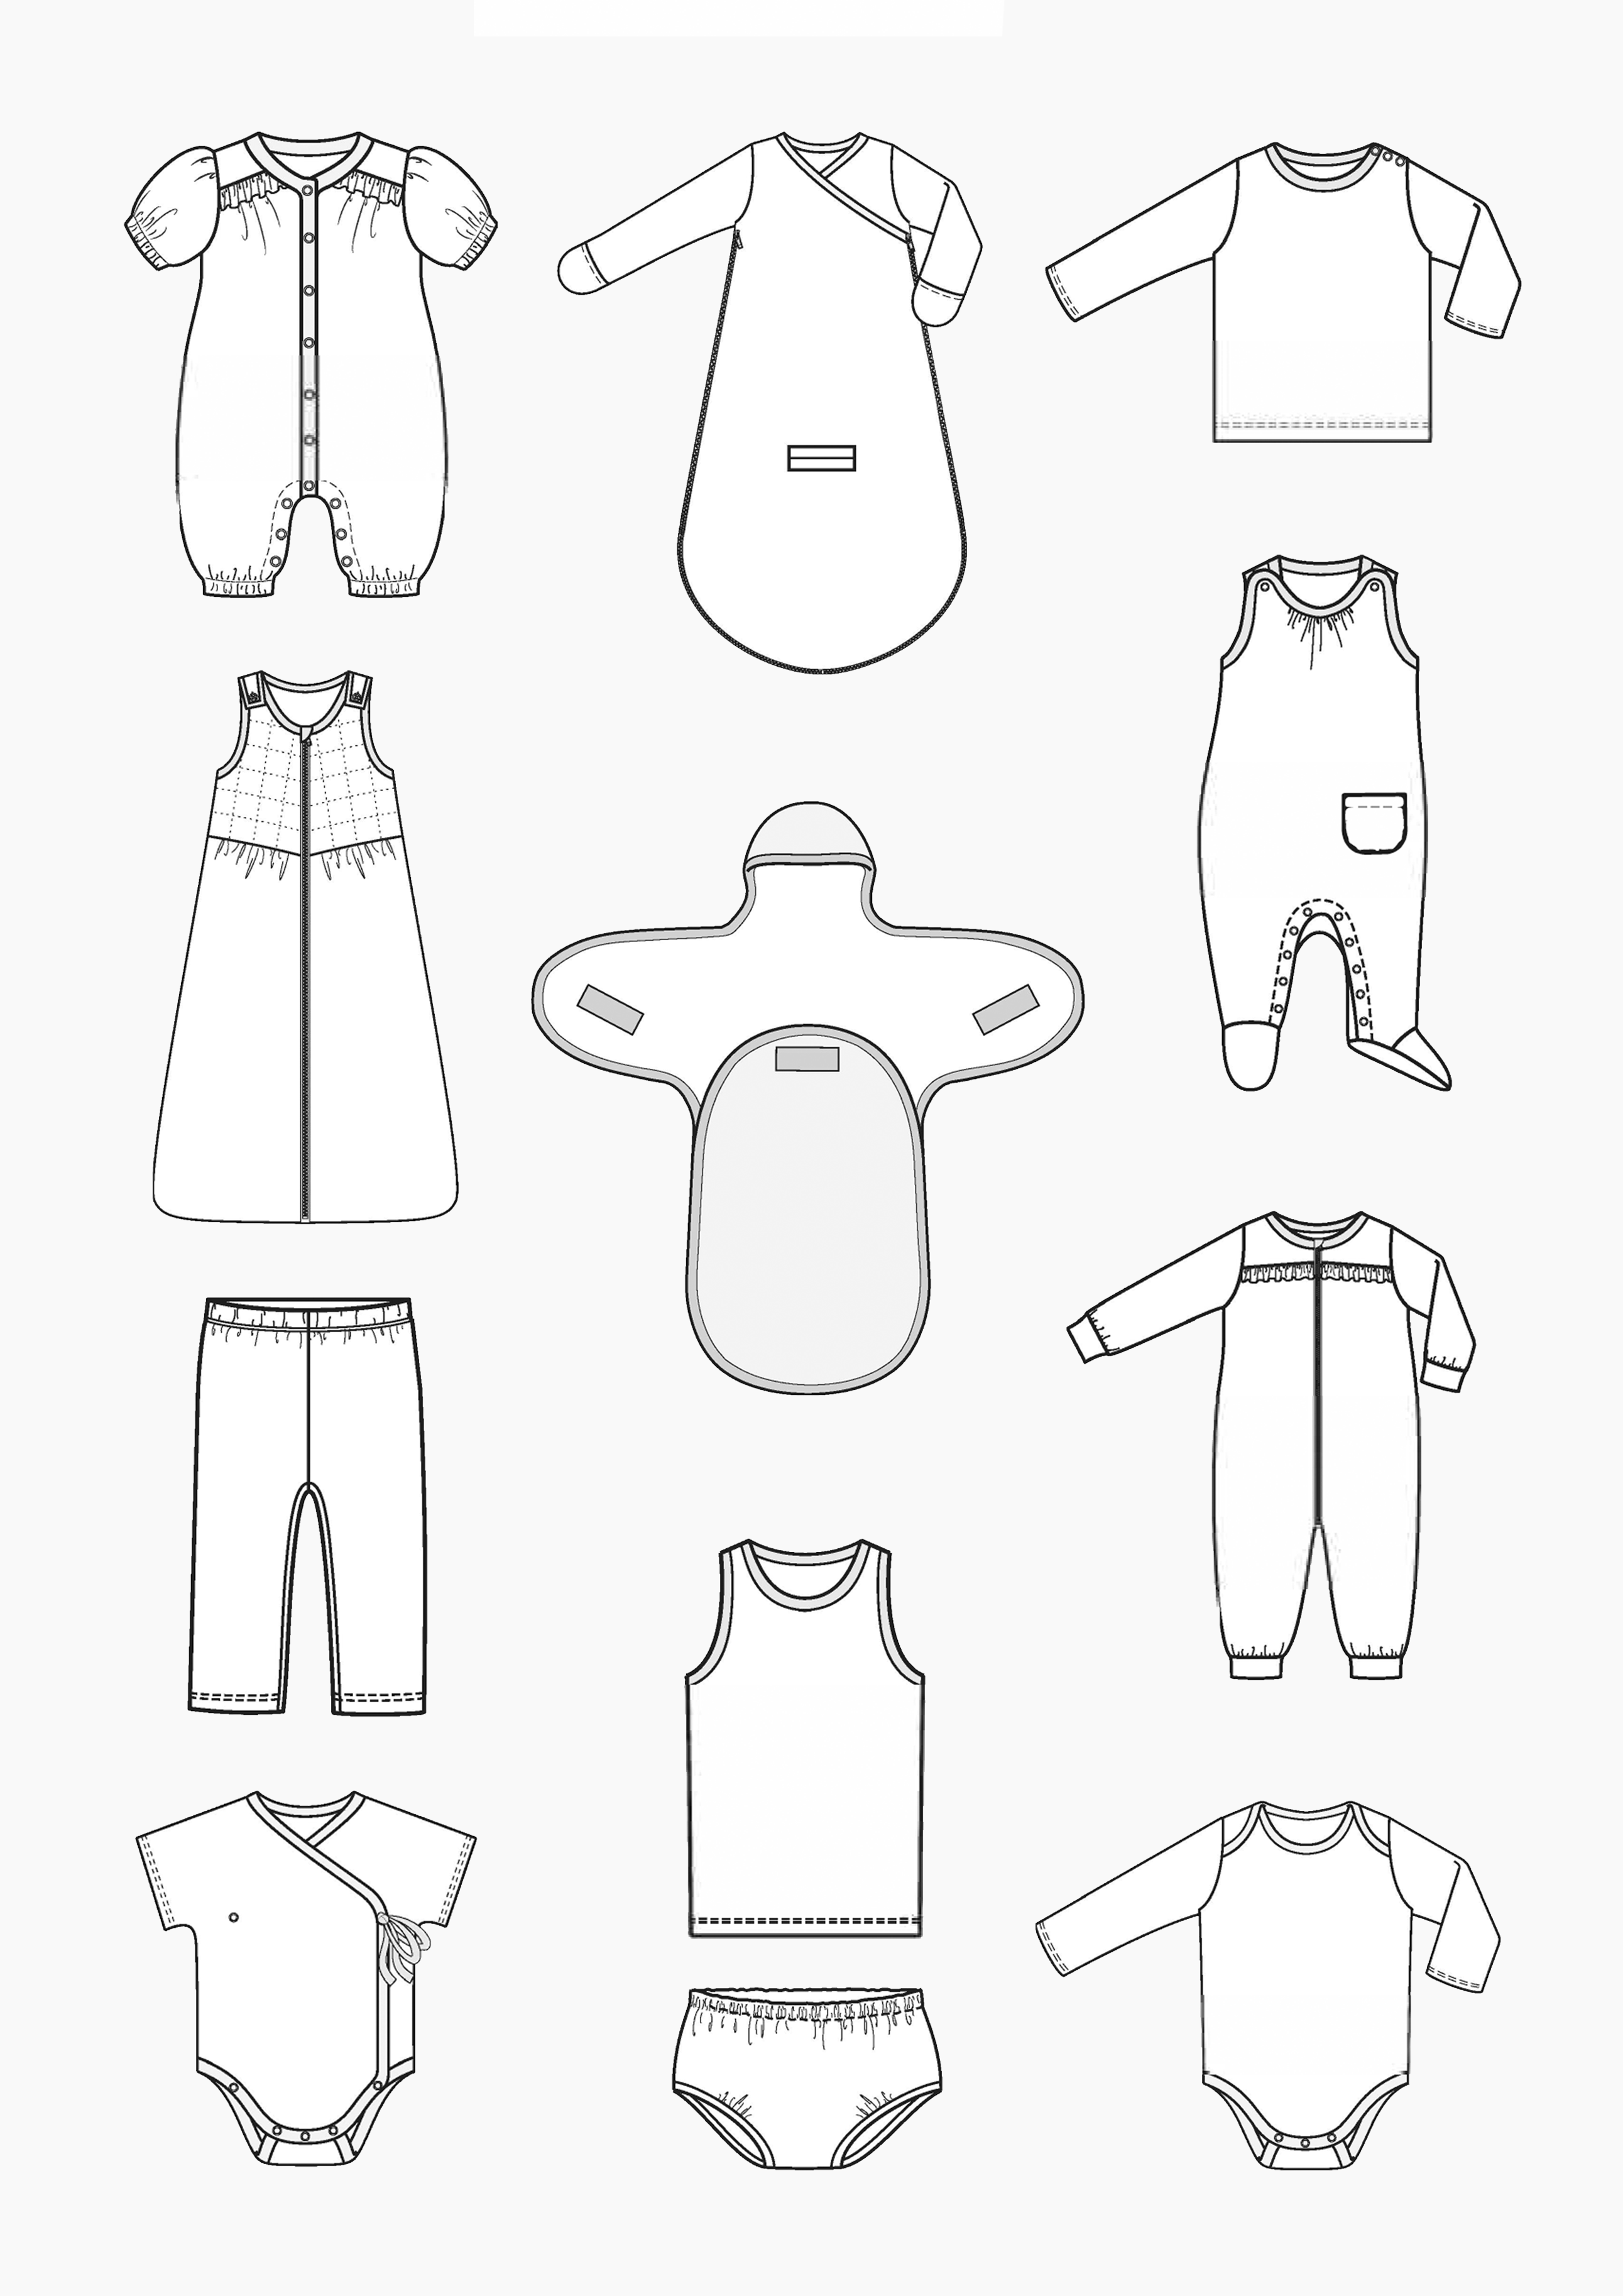 Overview of all Pattern for Babies